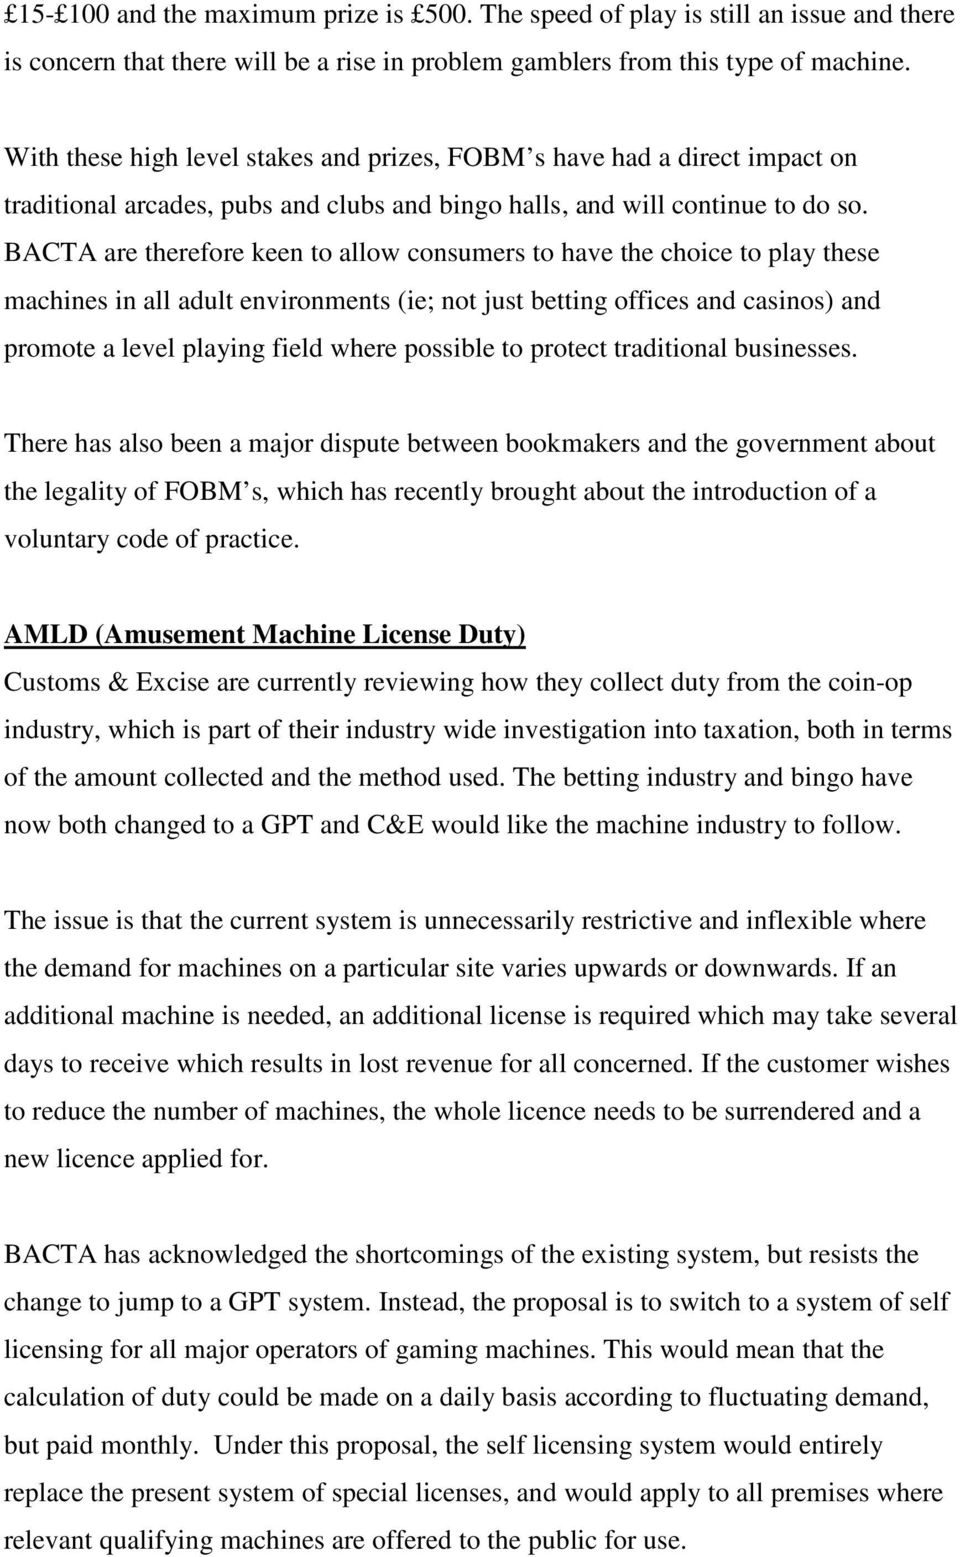 BACTA are therefore keen to allow consumers to have the choice to play these machines in all adult environments (ie; not just betting offices and casinos) and promote a level playing field where